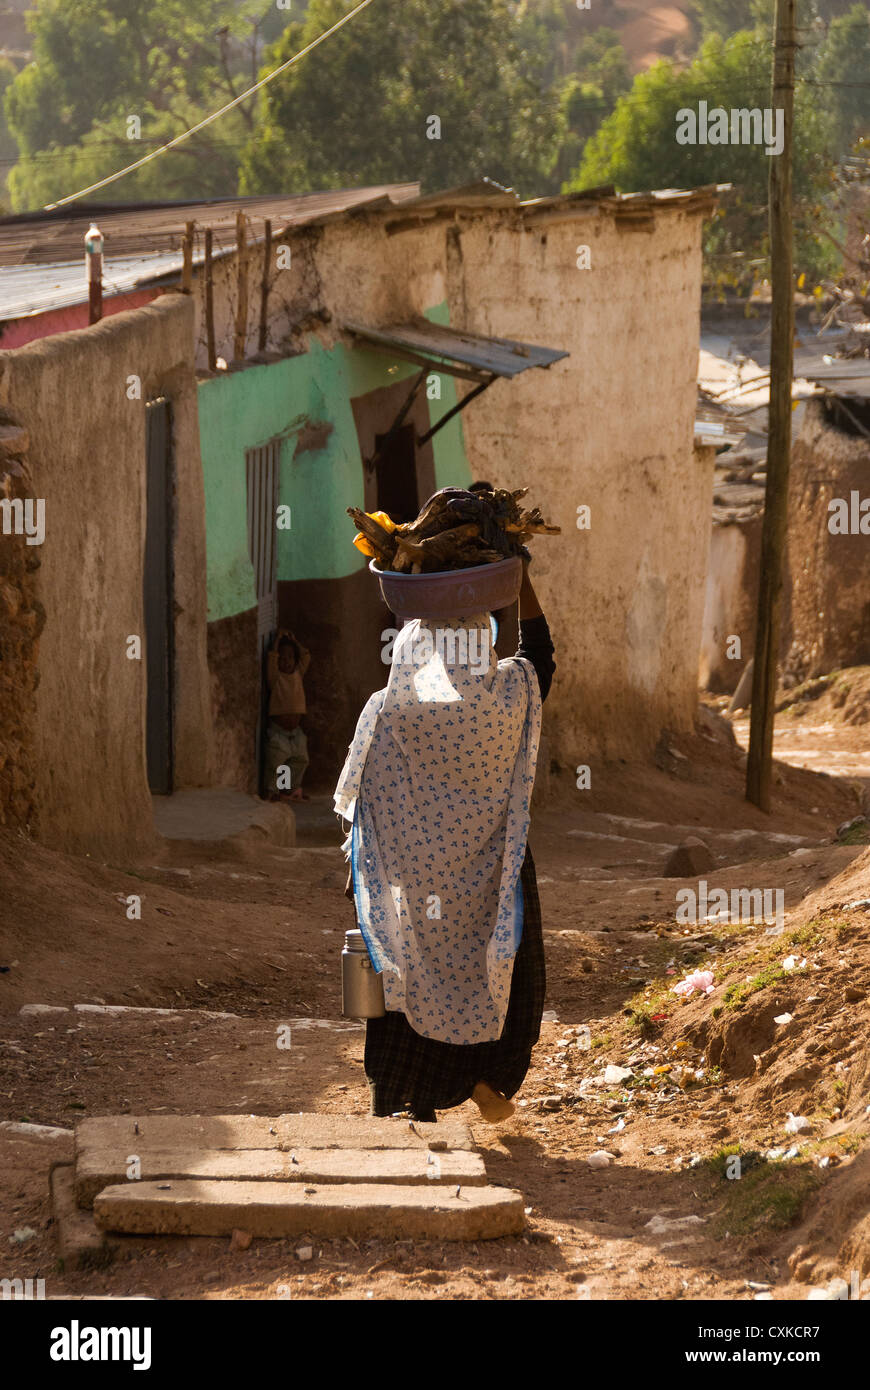 Elk200-4183v Ethiopia, Harar, old town, woman carrying load on head - Stock Image